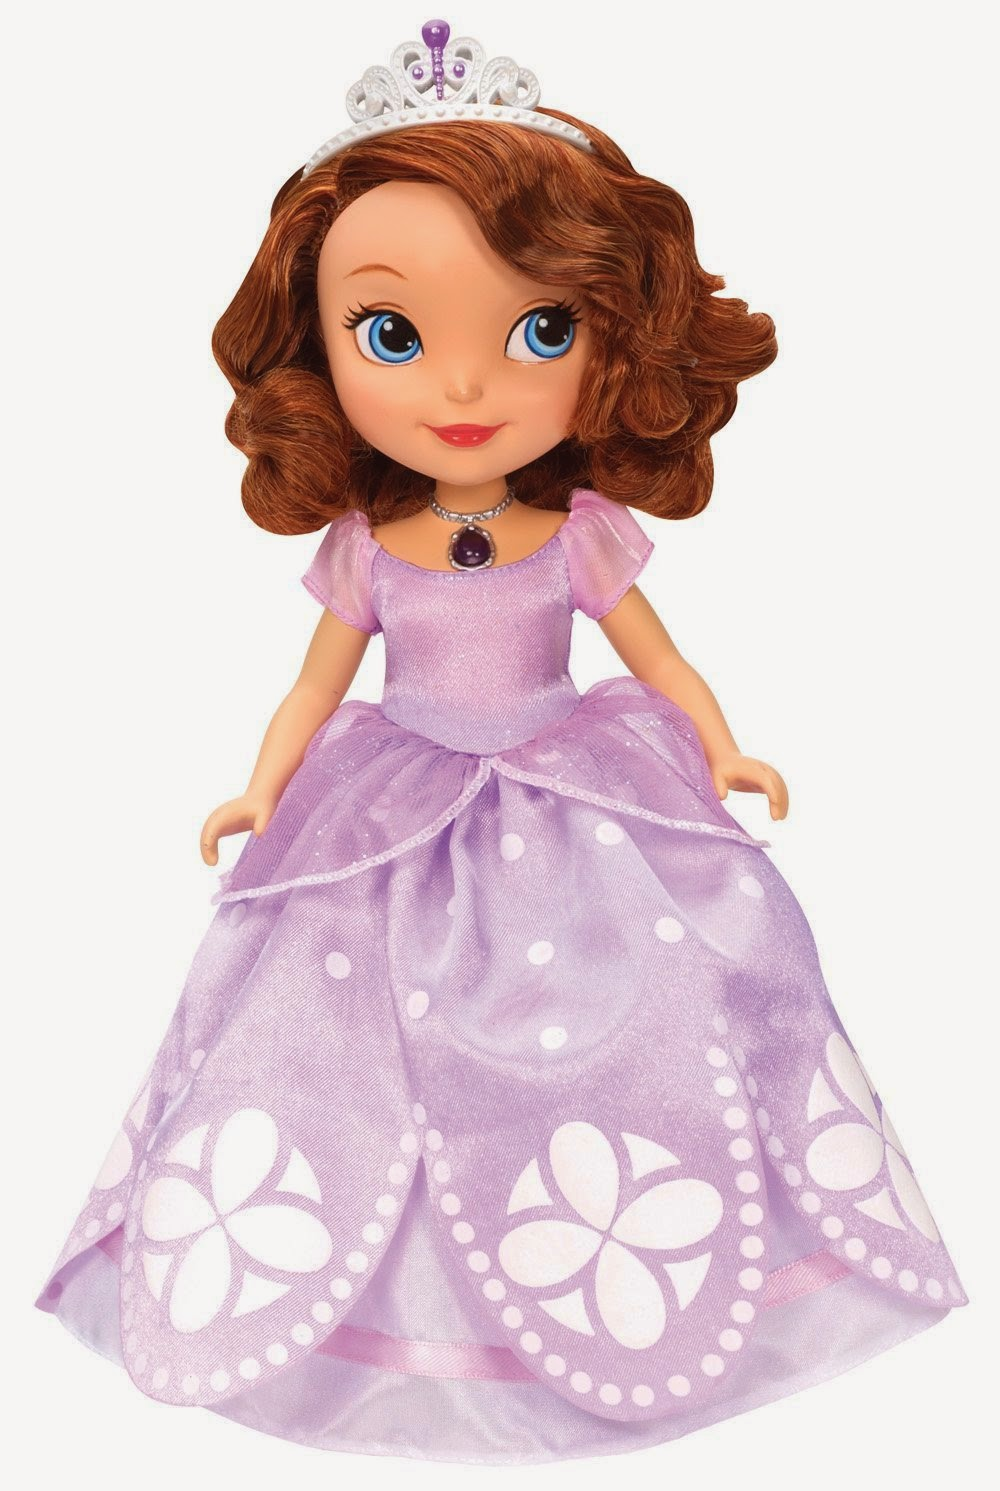 4littleboyz Online Toy Shop Amp Clothings Sofia The First